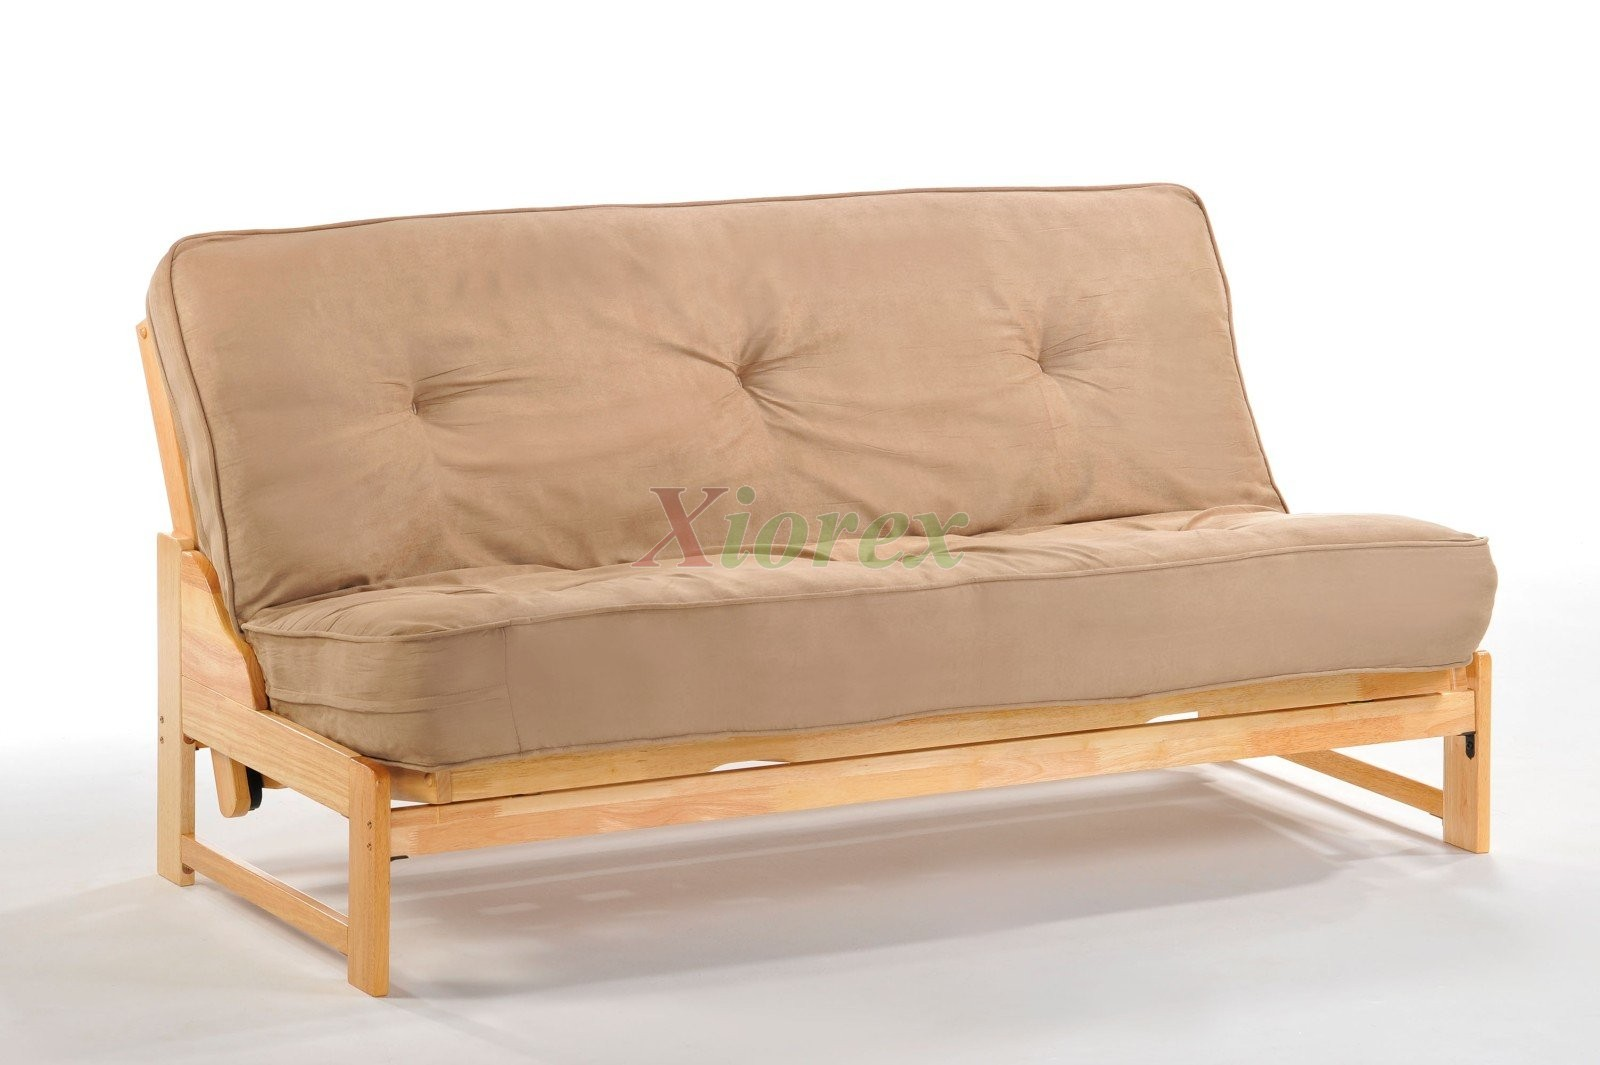 alder home ebay twin inch size itm futon mattress clay hansen